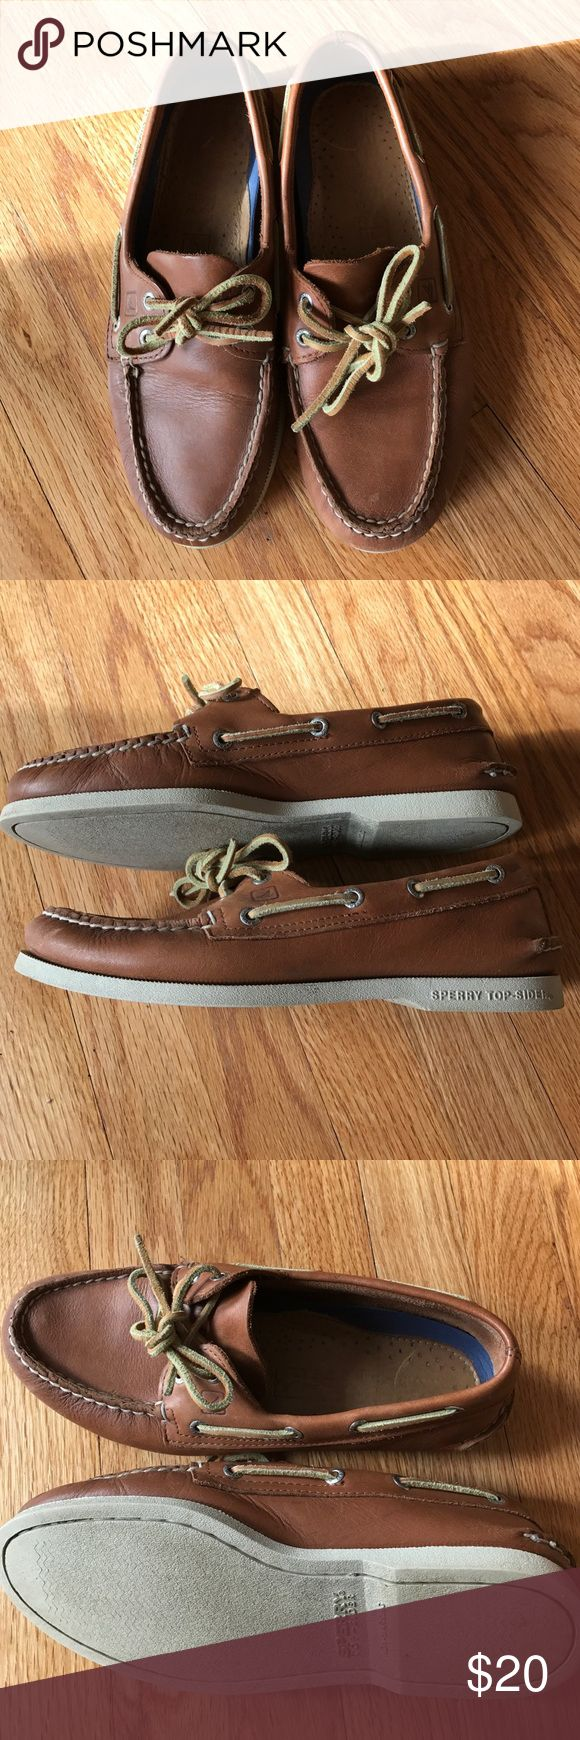 Sperry boat shoes Men's tan sperry boat shoes in very good shape. Size 8. Sperry Top-Sider Shoes Boat Shoes